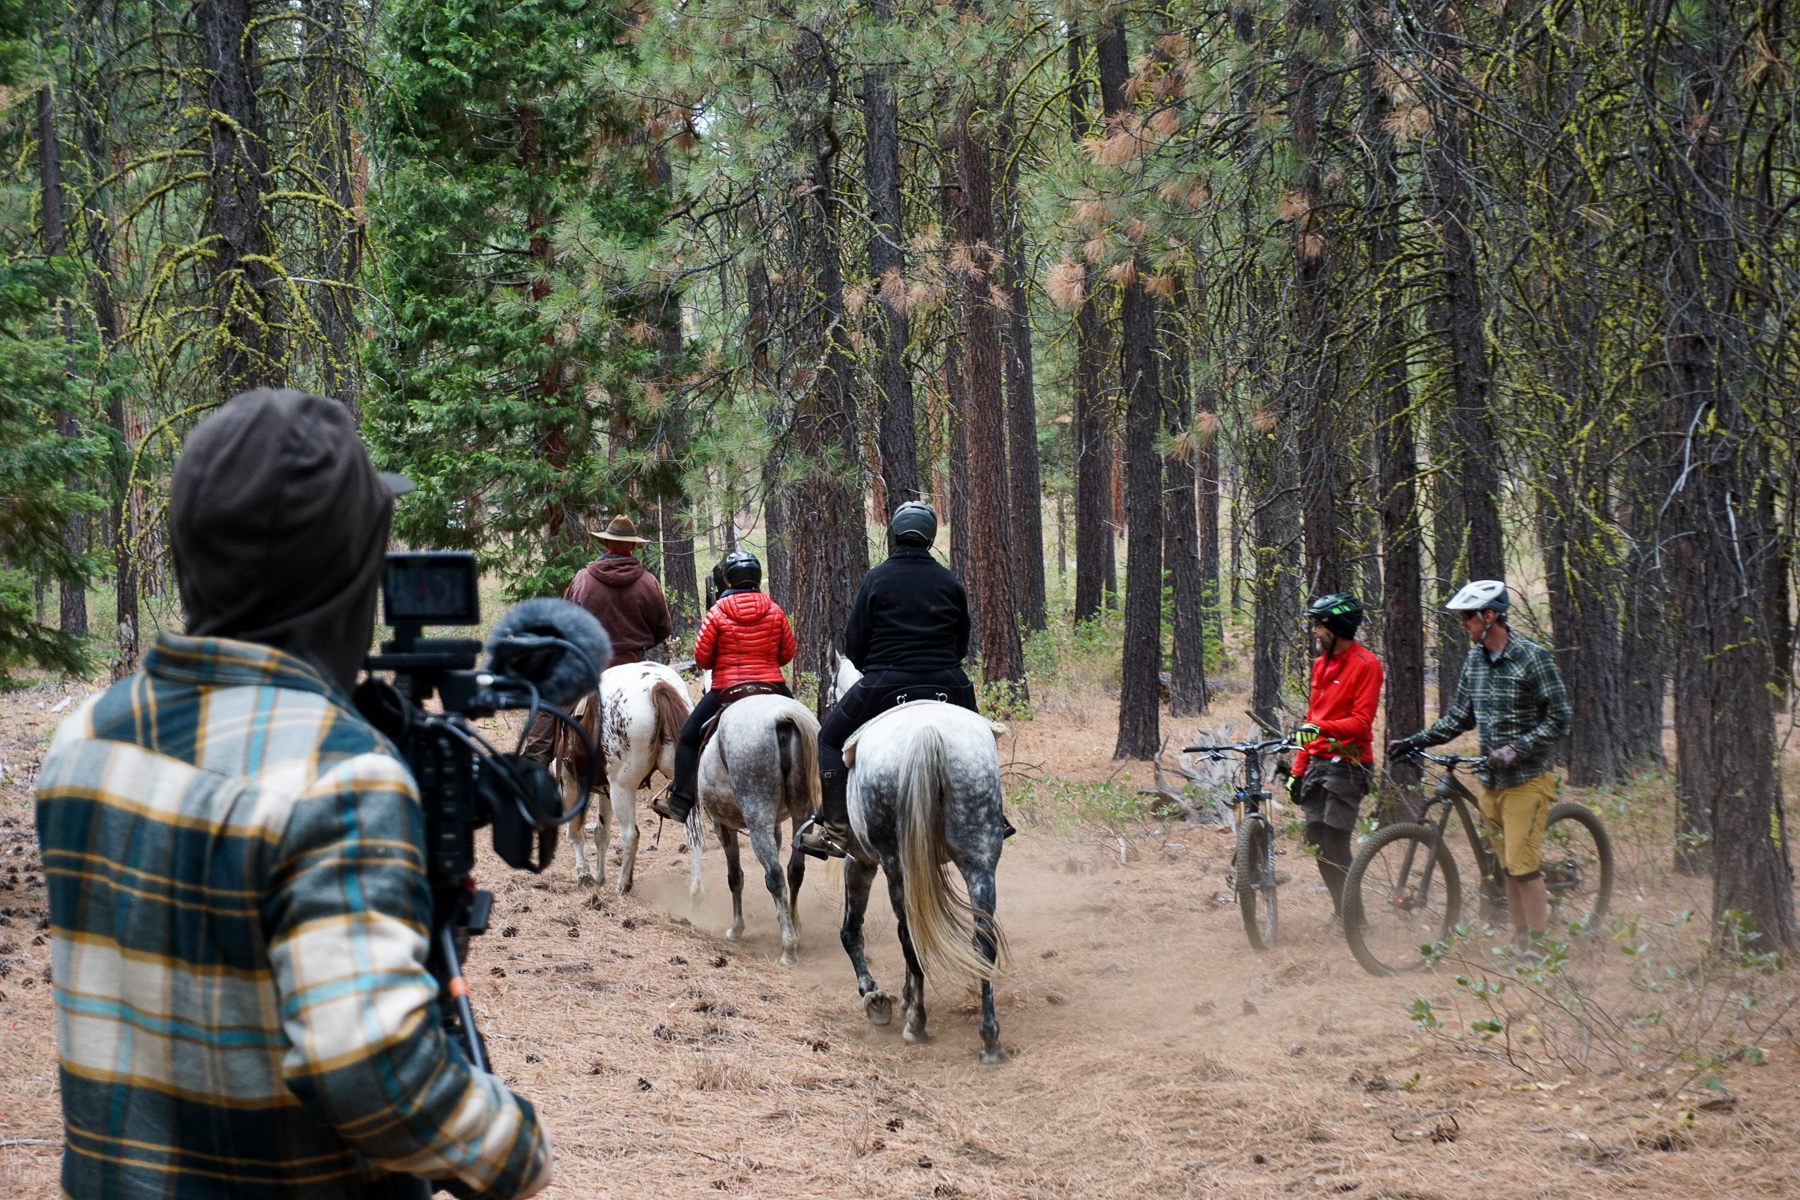 Local video production company Wahoo Films capturing trail etiquette between equestrians and mountain bikers.